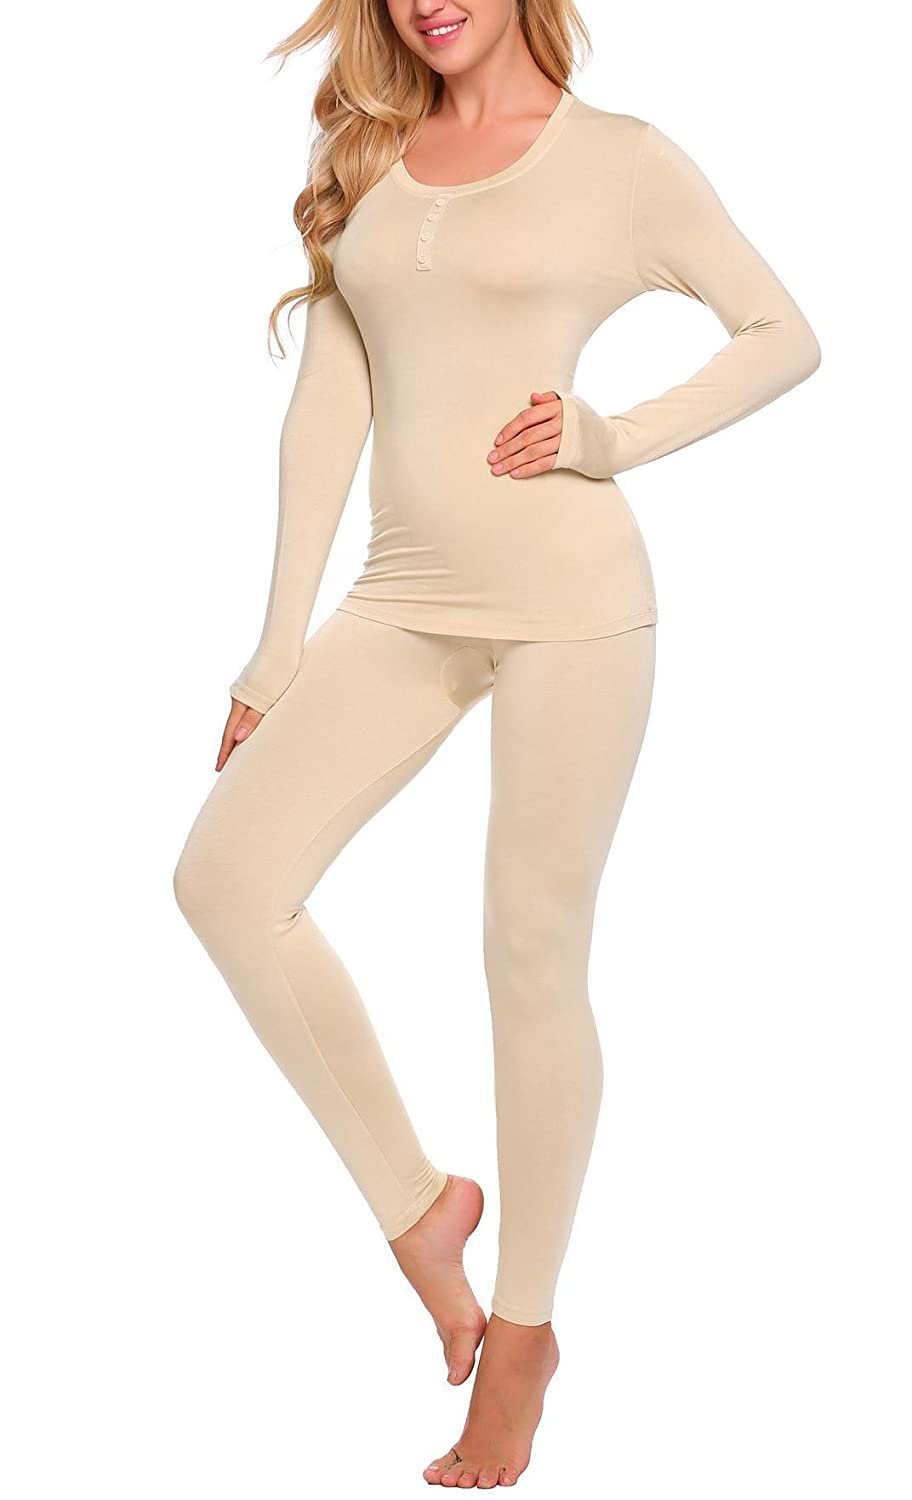 Goldenfox Ultra Soft Thermal Sets for Womens Wicking Cotton Underwear Long  Johns S-XXL at Amazon Women s Clothing store  ee42a242cba